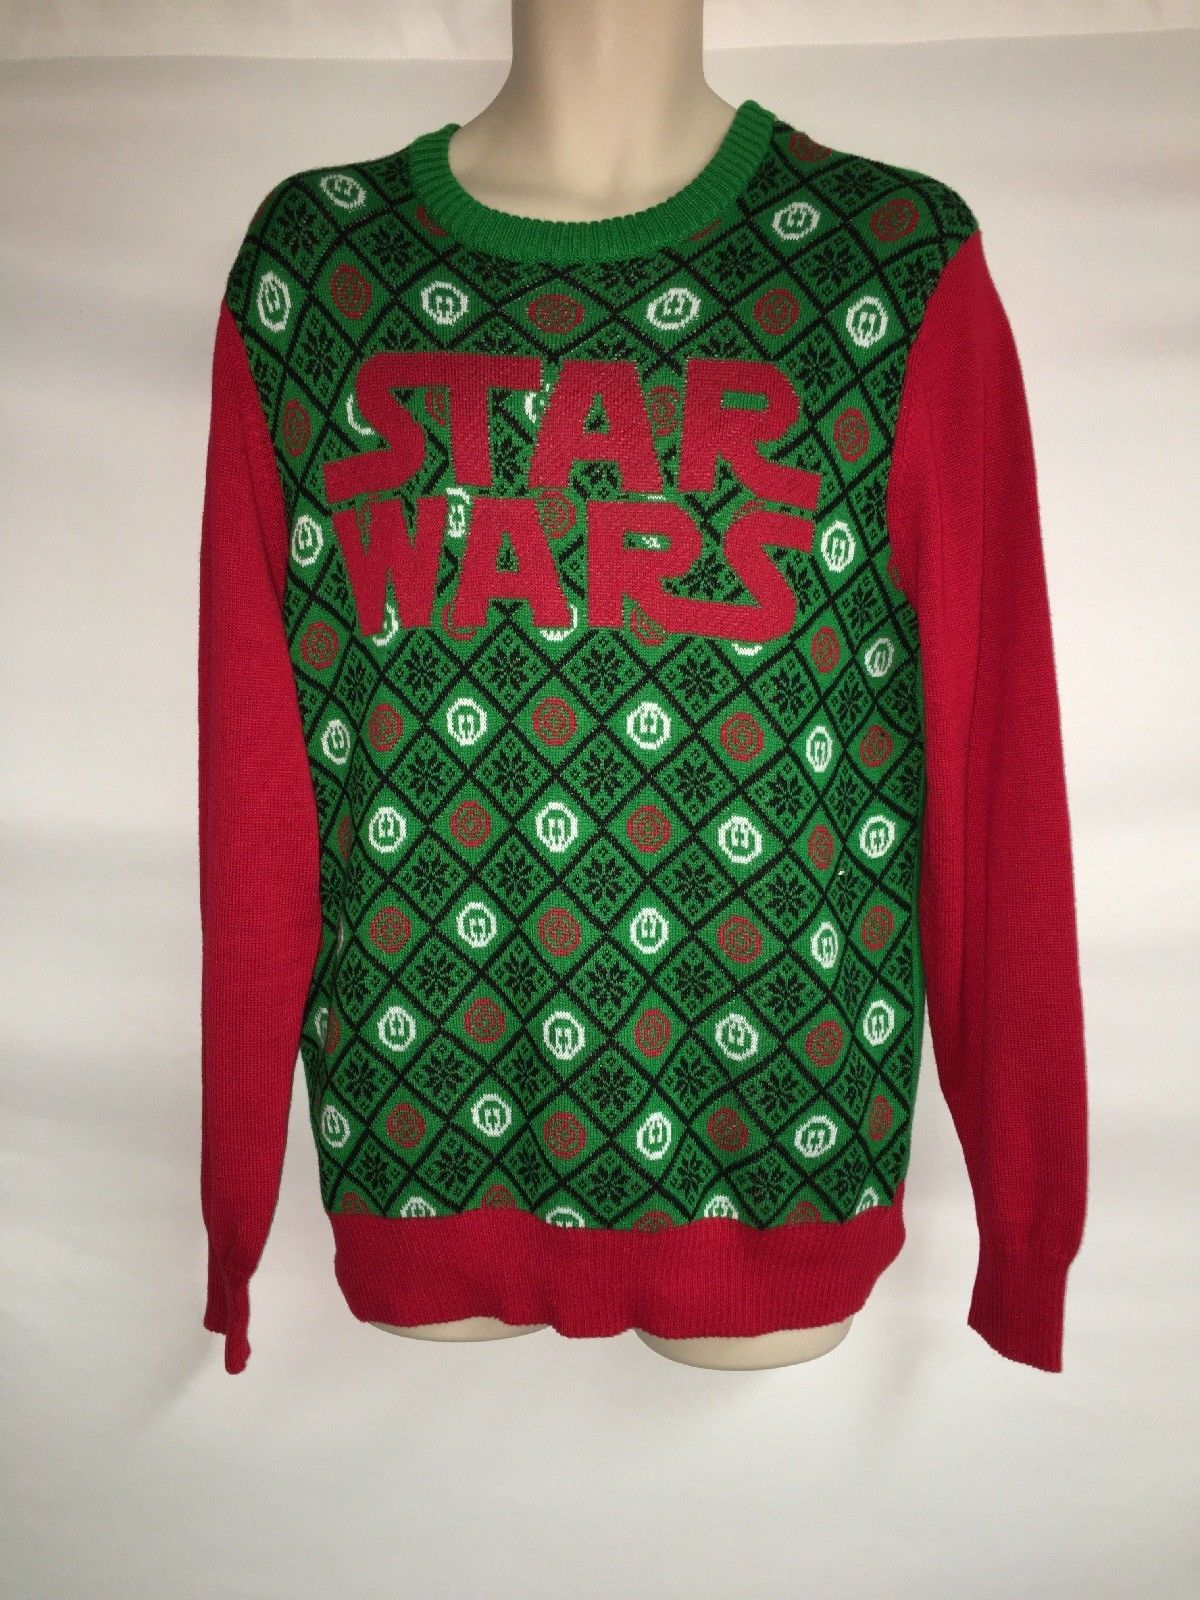 Primary image for Star Wars Ugly Christmas Sweater Mens Medium NWT